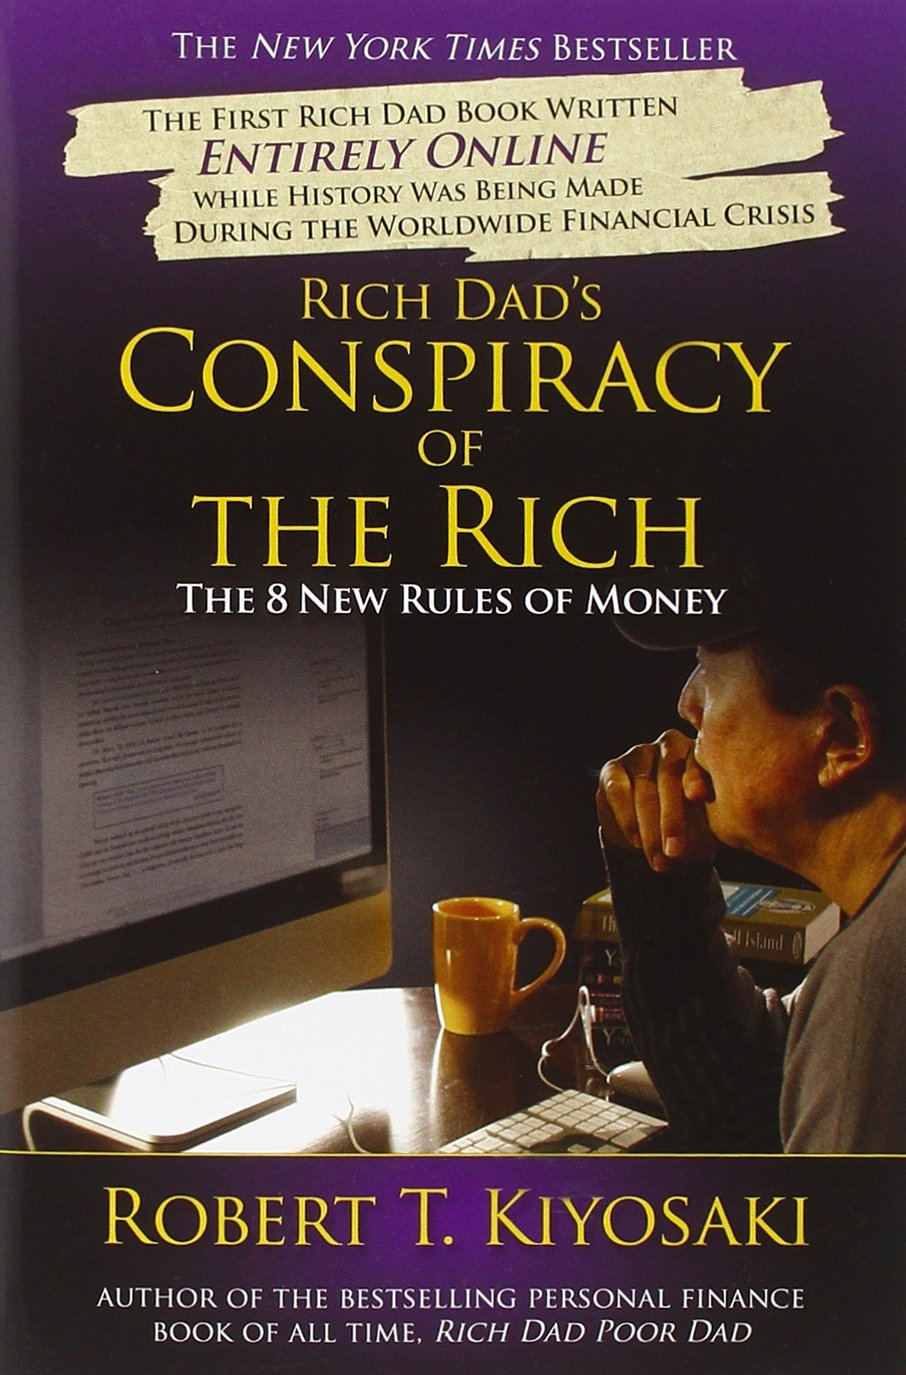 Buy Rich Dad's Conspiracy of the Rich Book Online at Low Prices in India | Rich  Dad's Conspiracy of the Rich Reviews & Ratings - Amazon.in